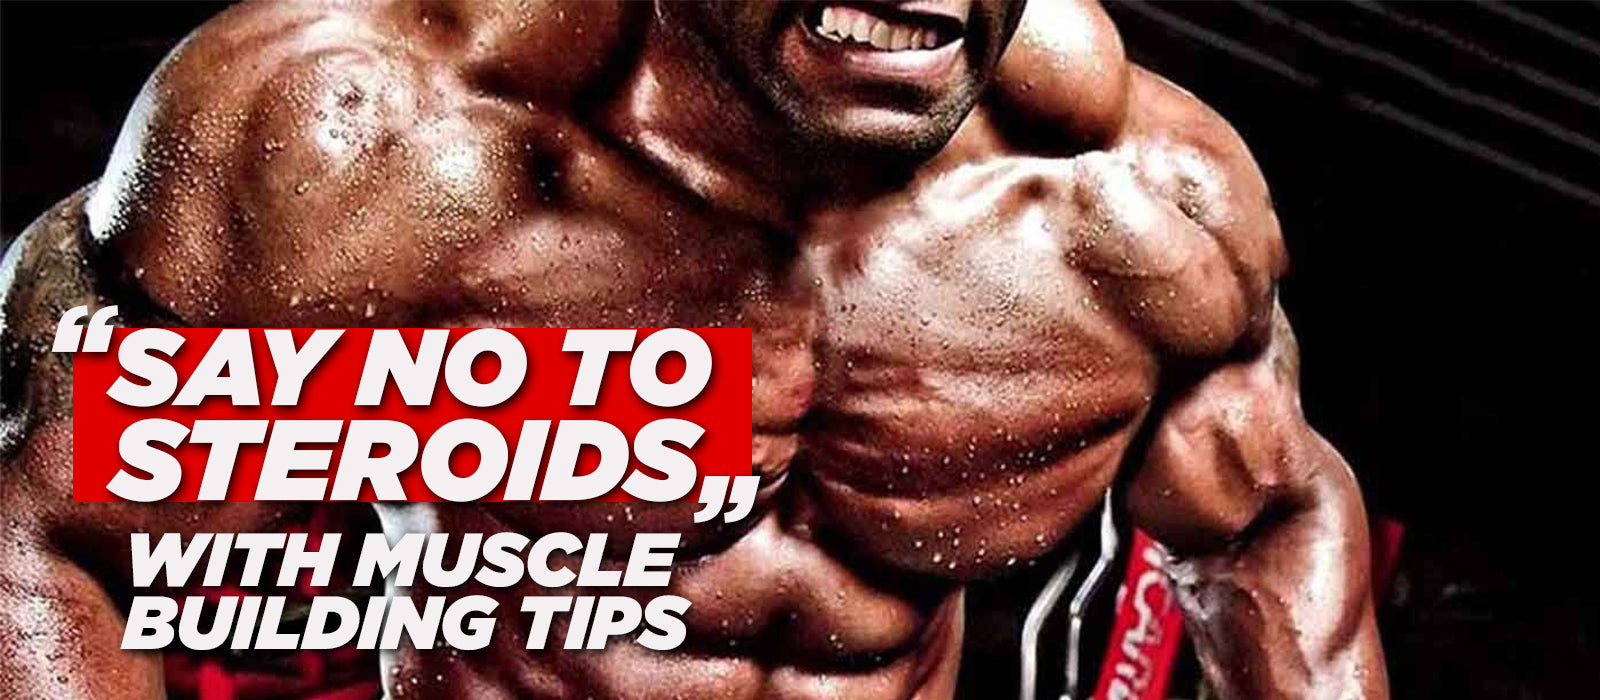 Say No To Steroids With Muscle Building Tips